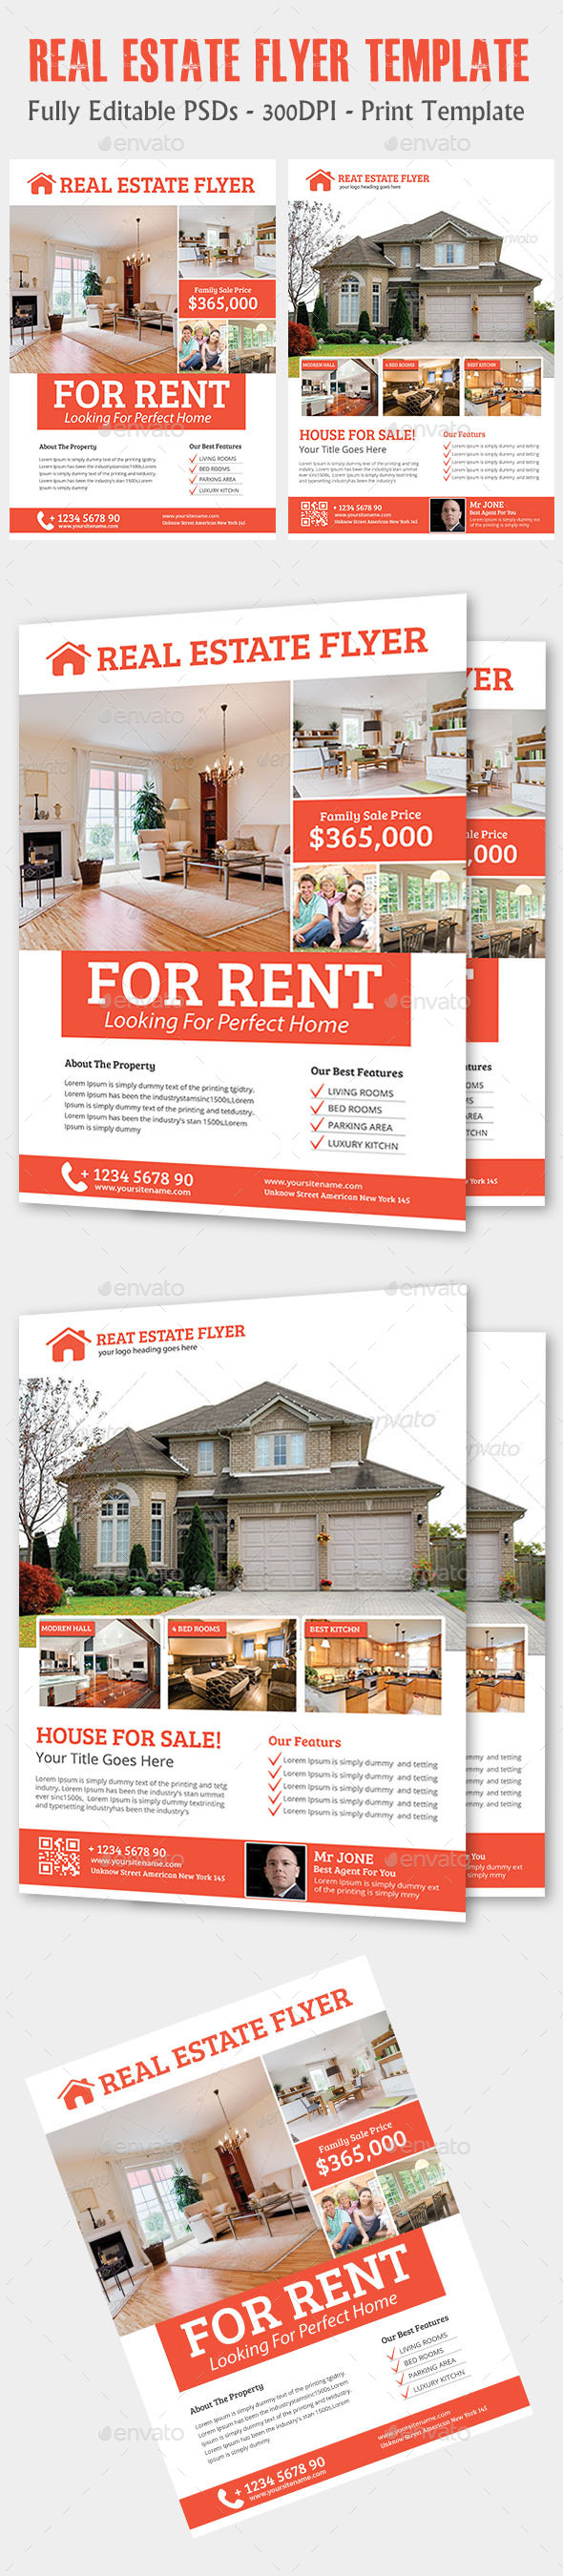 GraphicRiver Real Estate Flyer 11883881